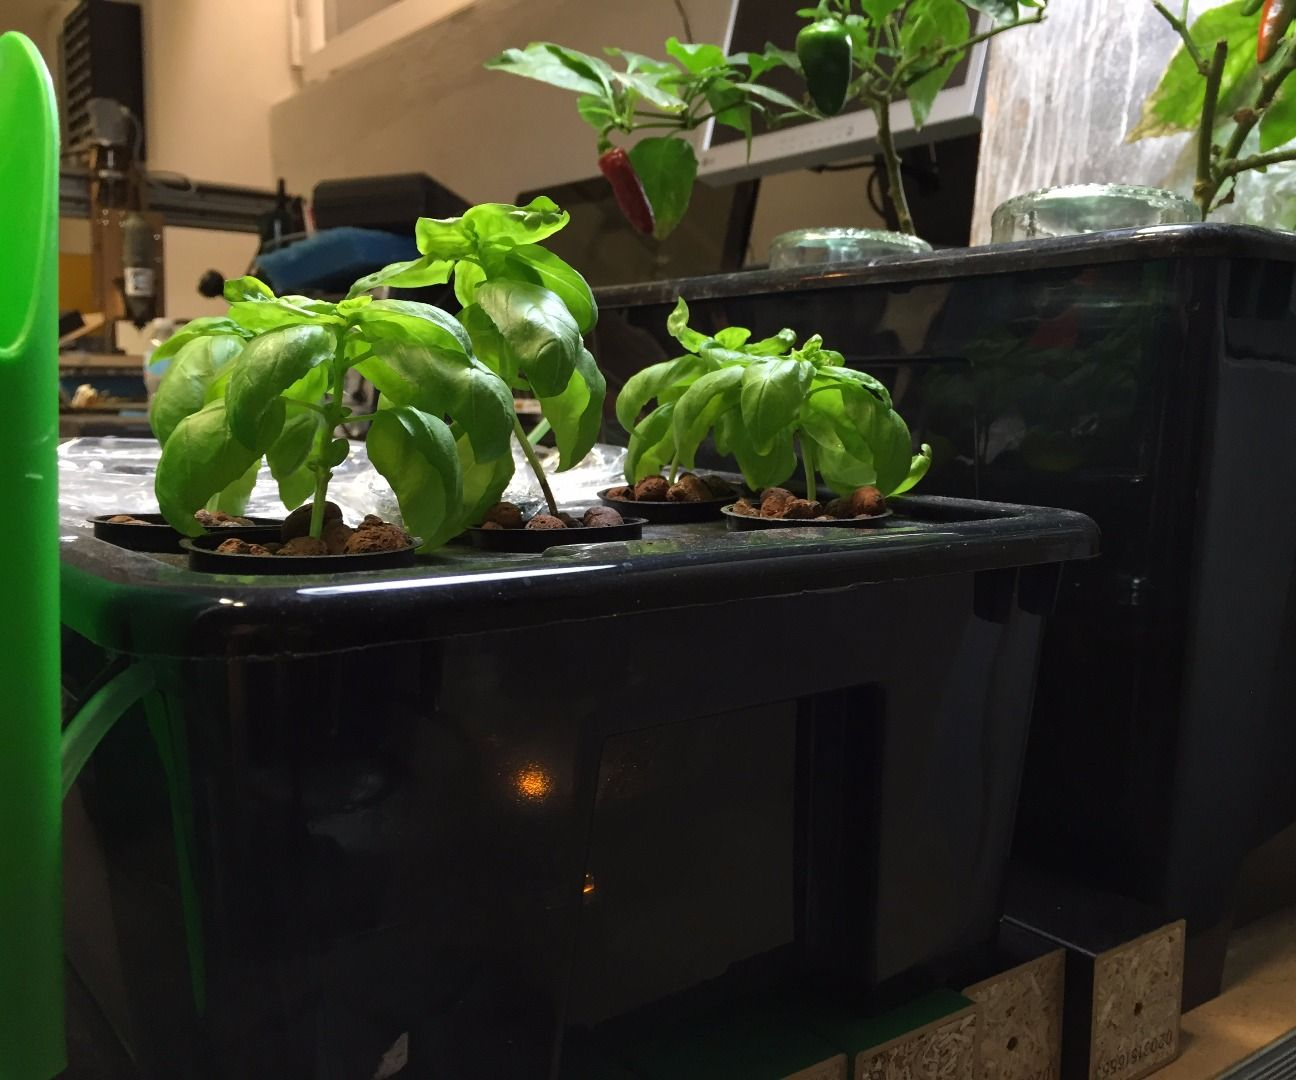 Fogponic Garden (Hydroponics With Fog) : 5 Steps (with Pictures)